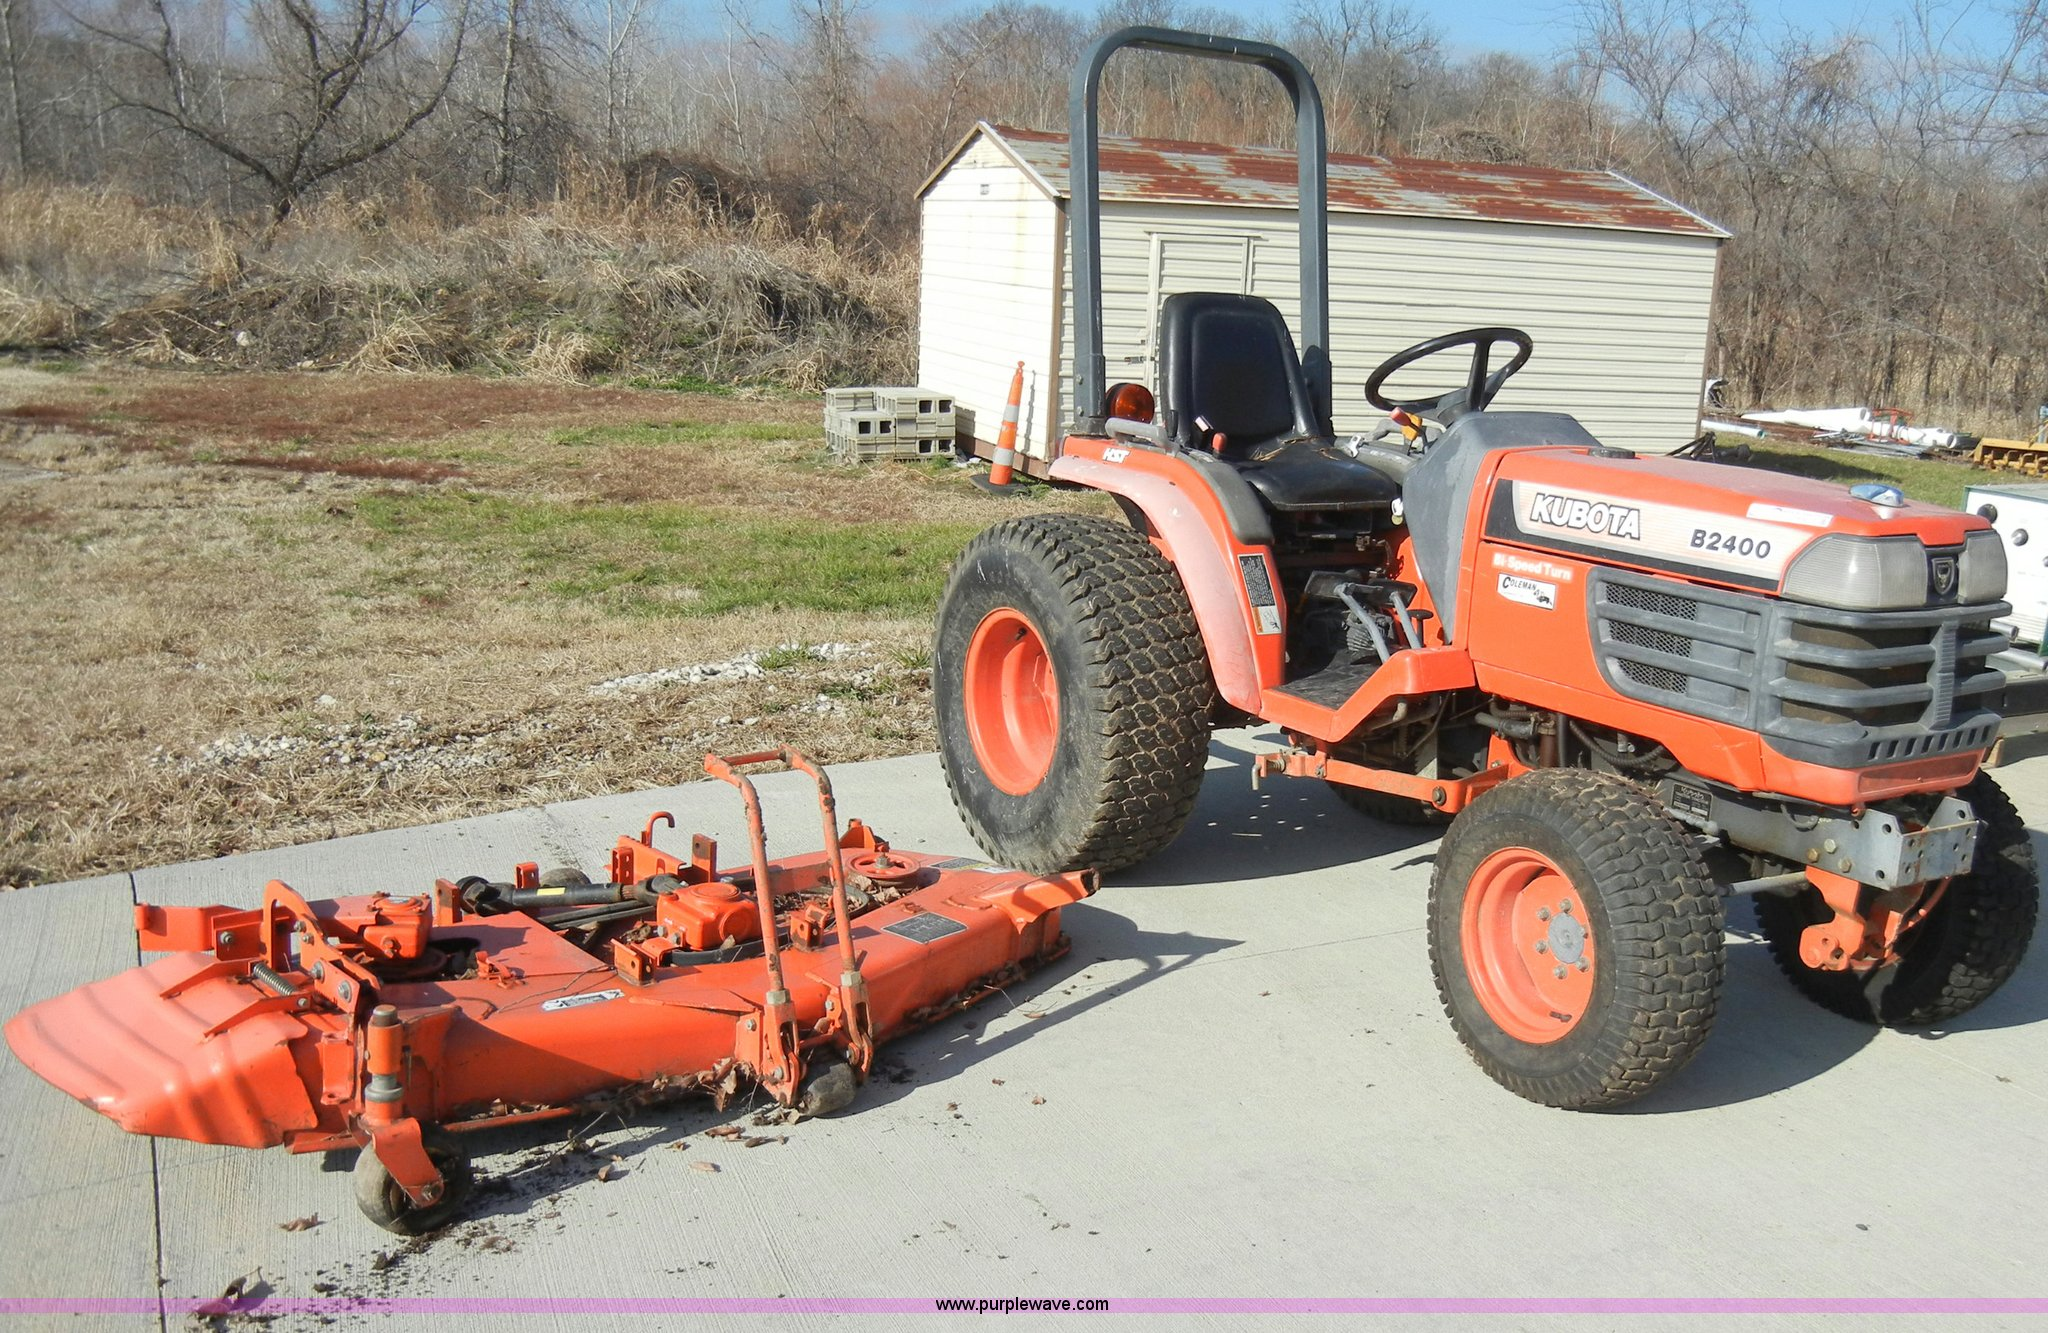 H9172 image for item H9172 Kubota B2400 tractor with mower